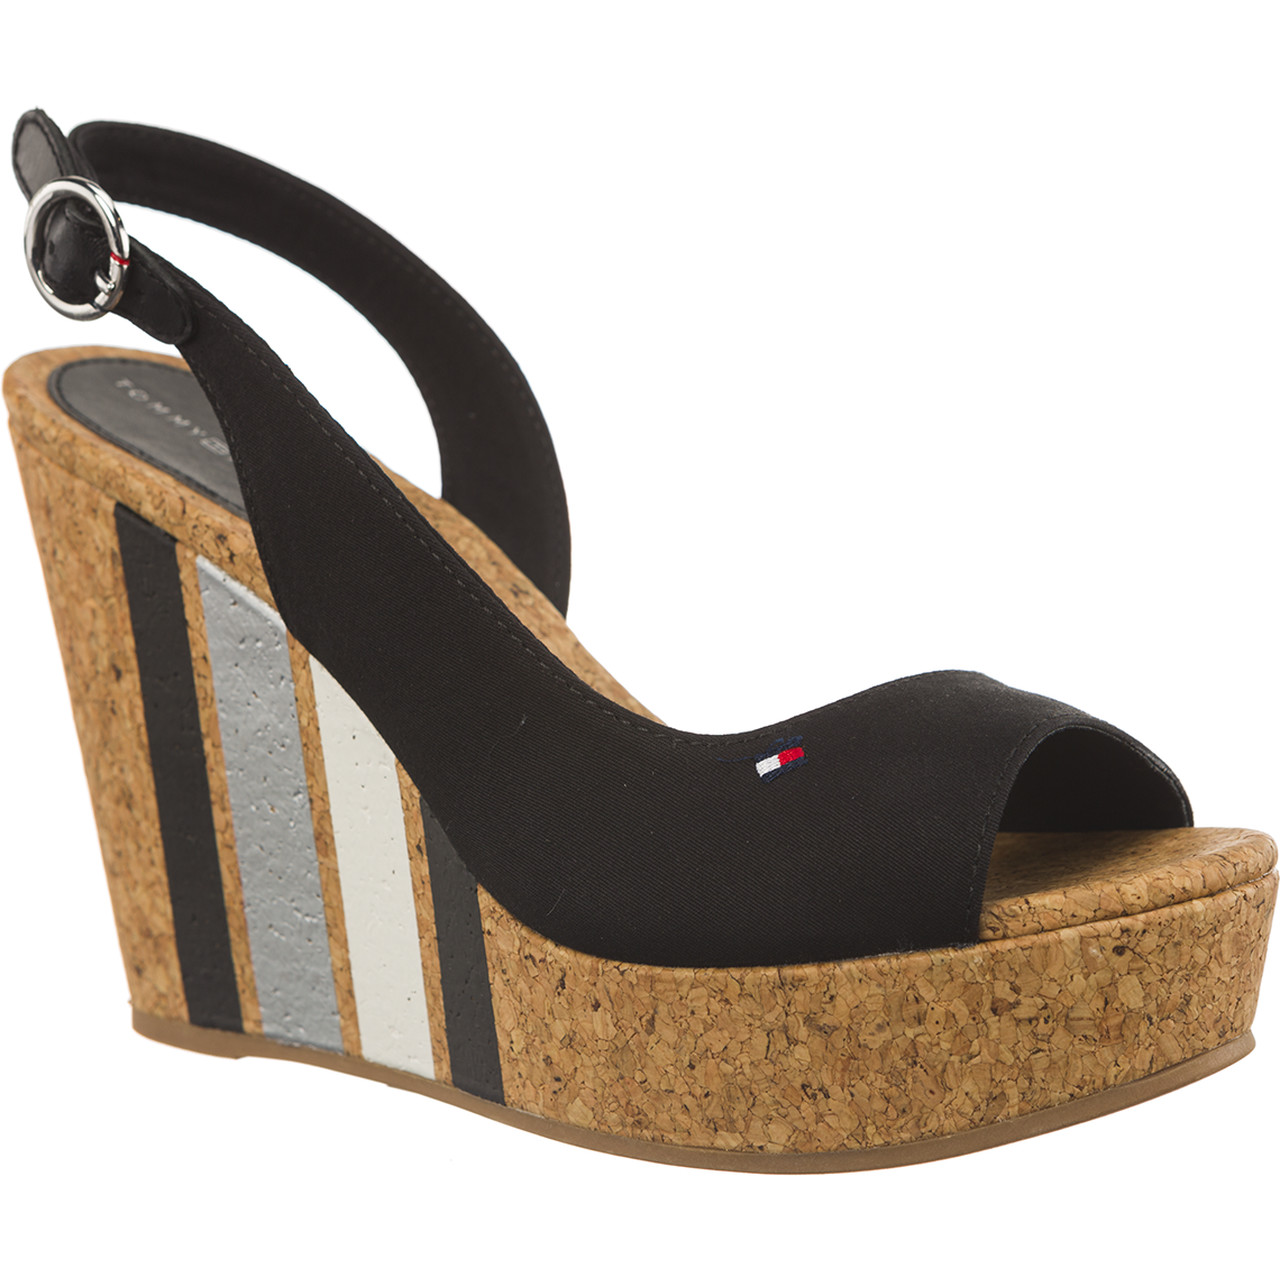 Sandały Tommy Hilfiger  <br/><small>WEDGE WITH PRINTED STRIPES 990 BLACK </small>  FW0FW02794-990